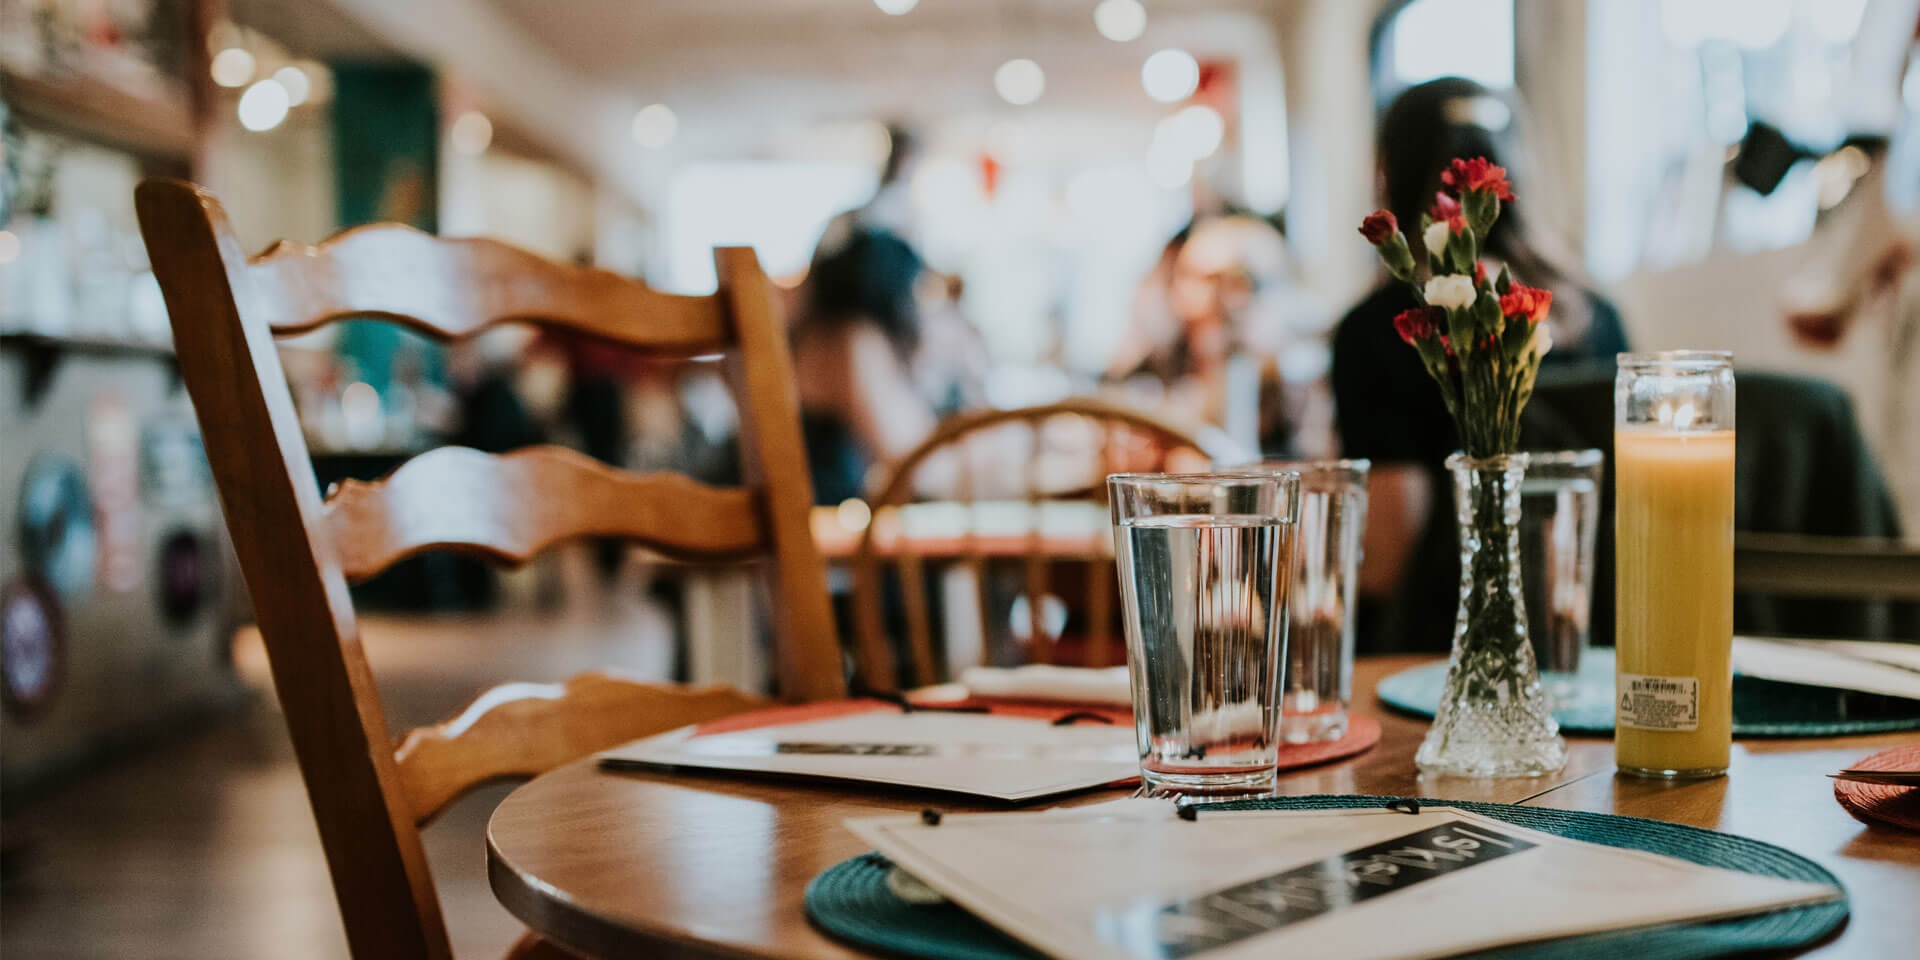 4 Simple Ways To Maximize Table Turnover In Your Restaurant